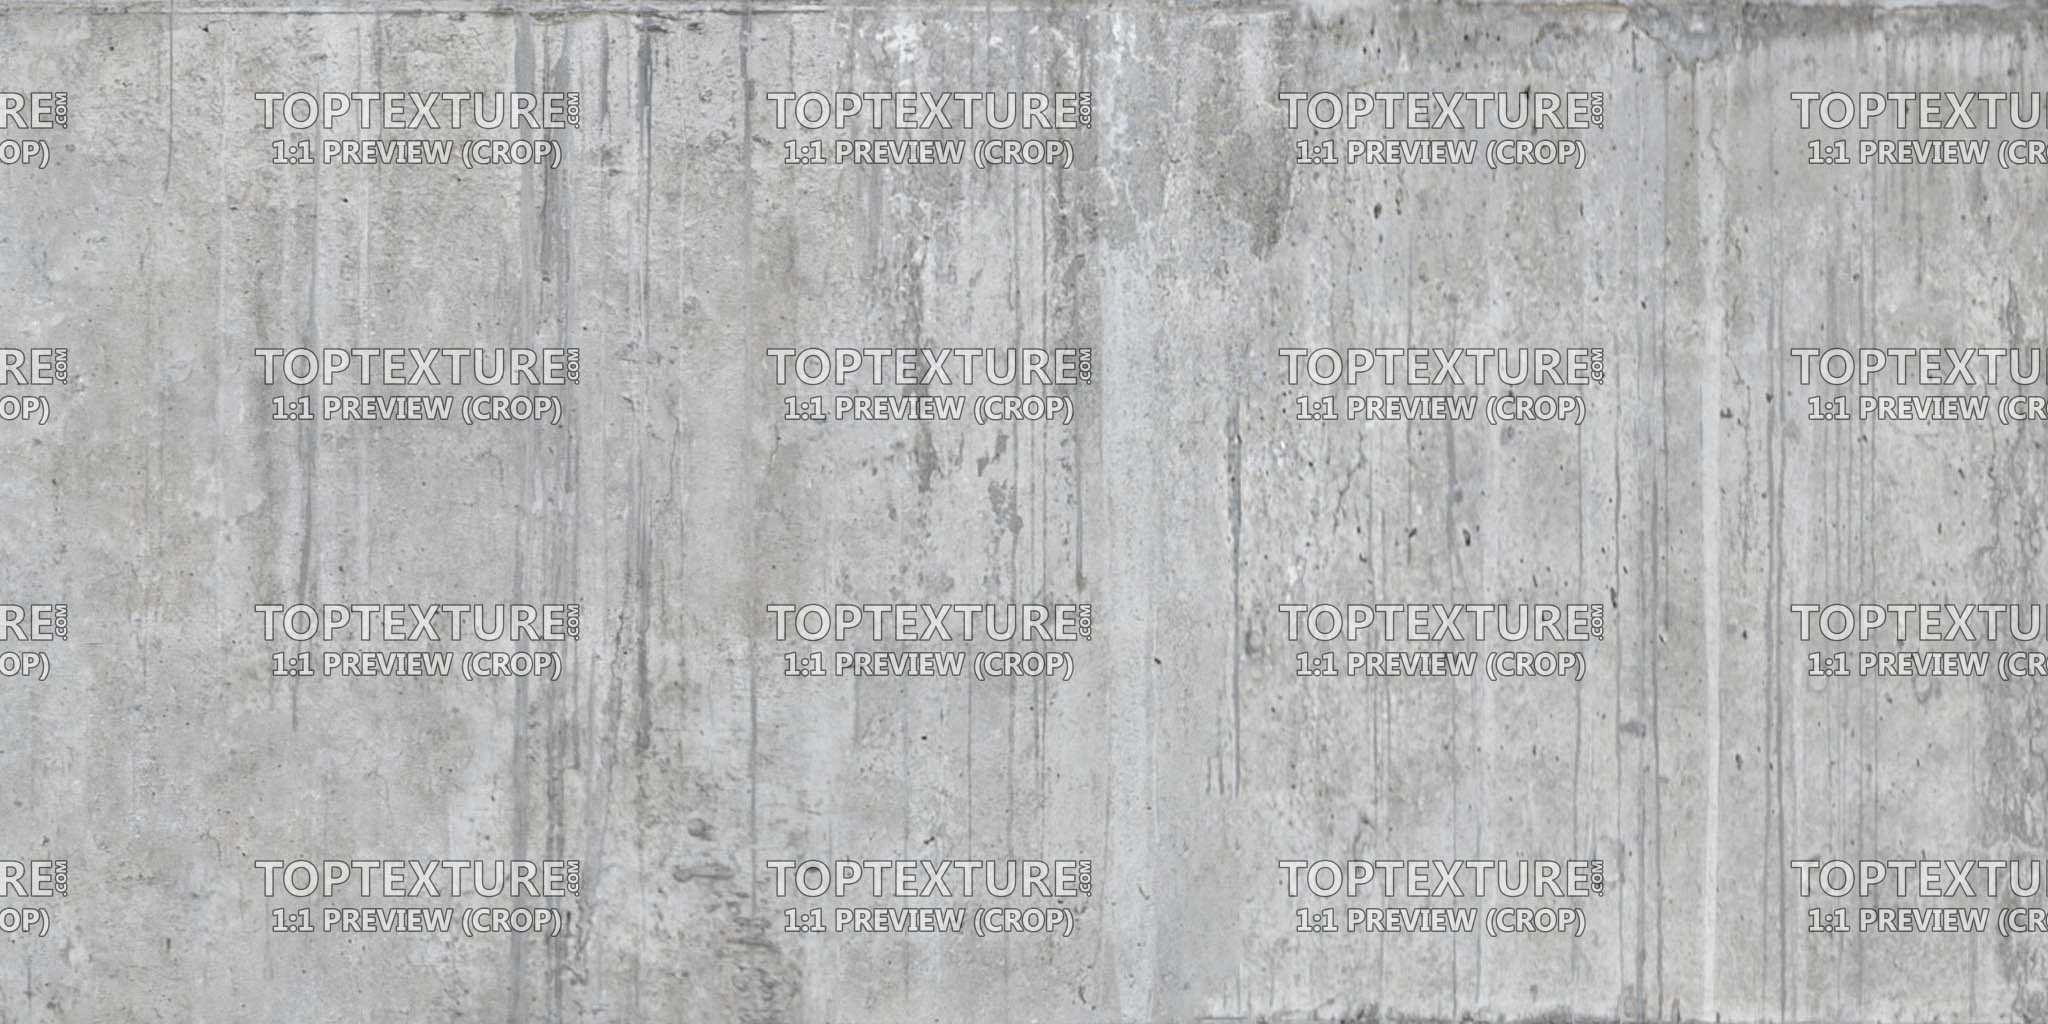 Concrete wall texture photo